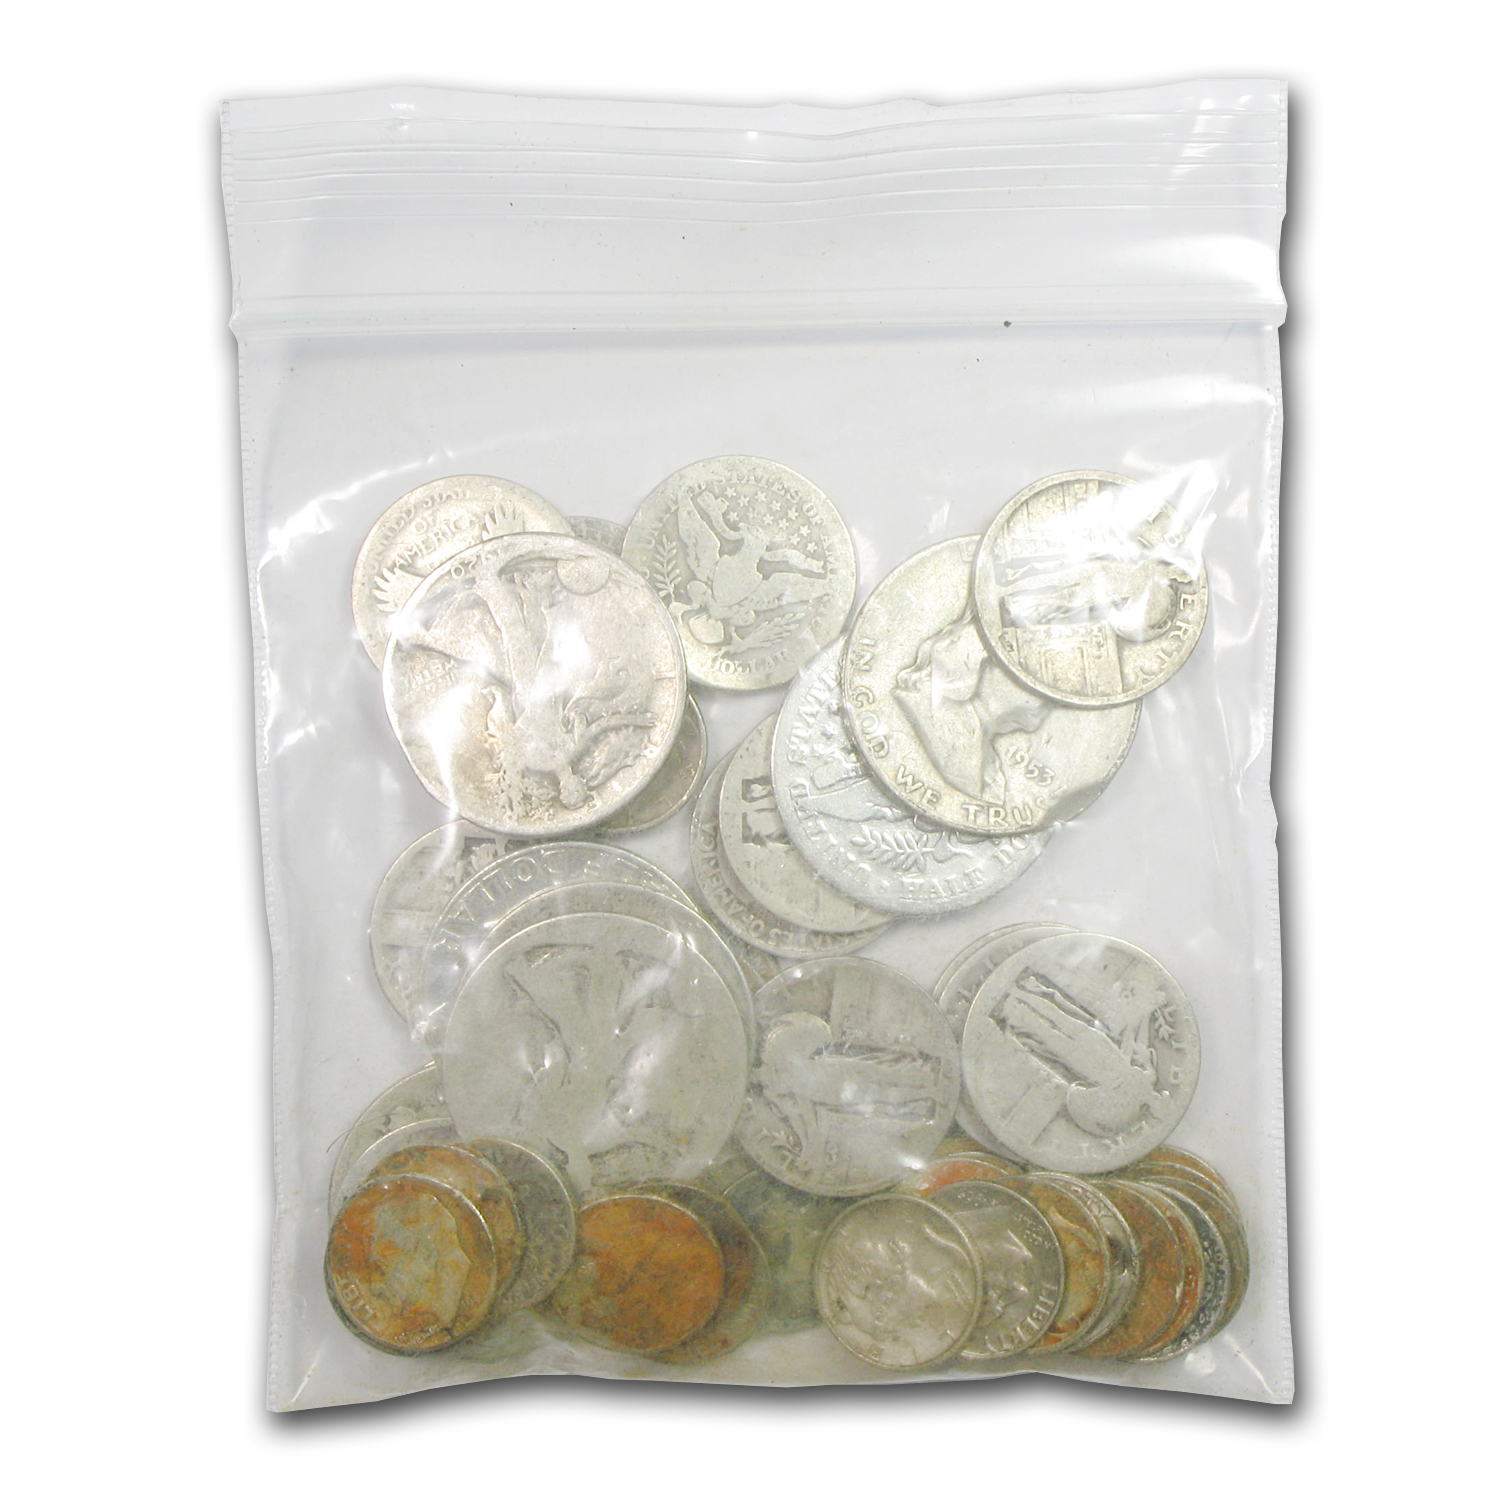 $10 Face-Value lot of 90% Silver Coins Culls